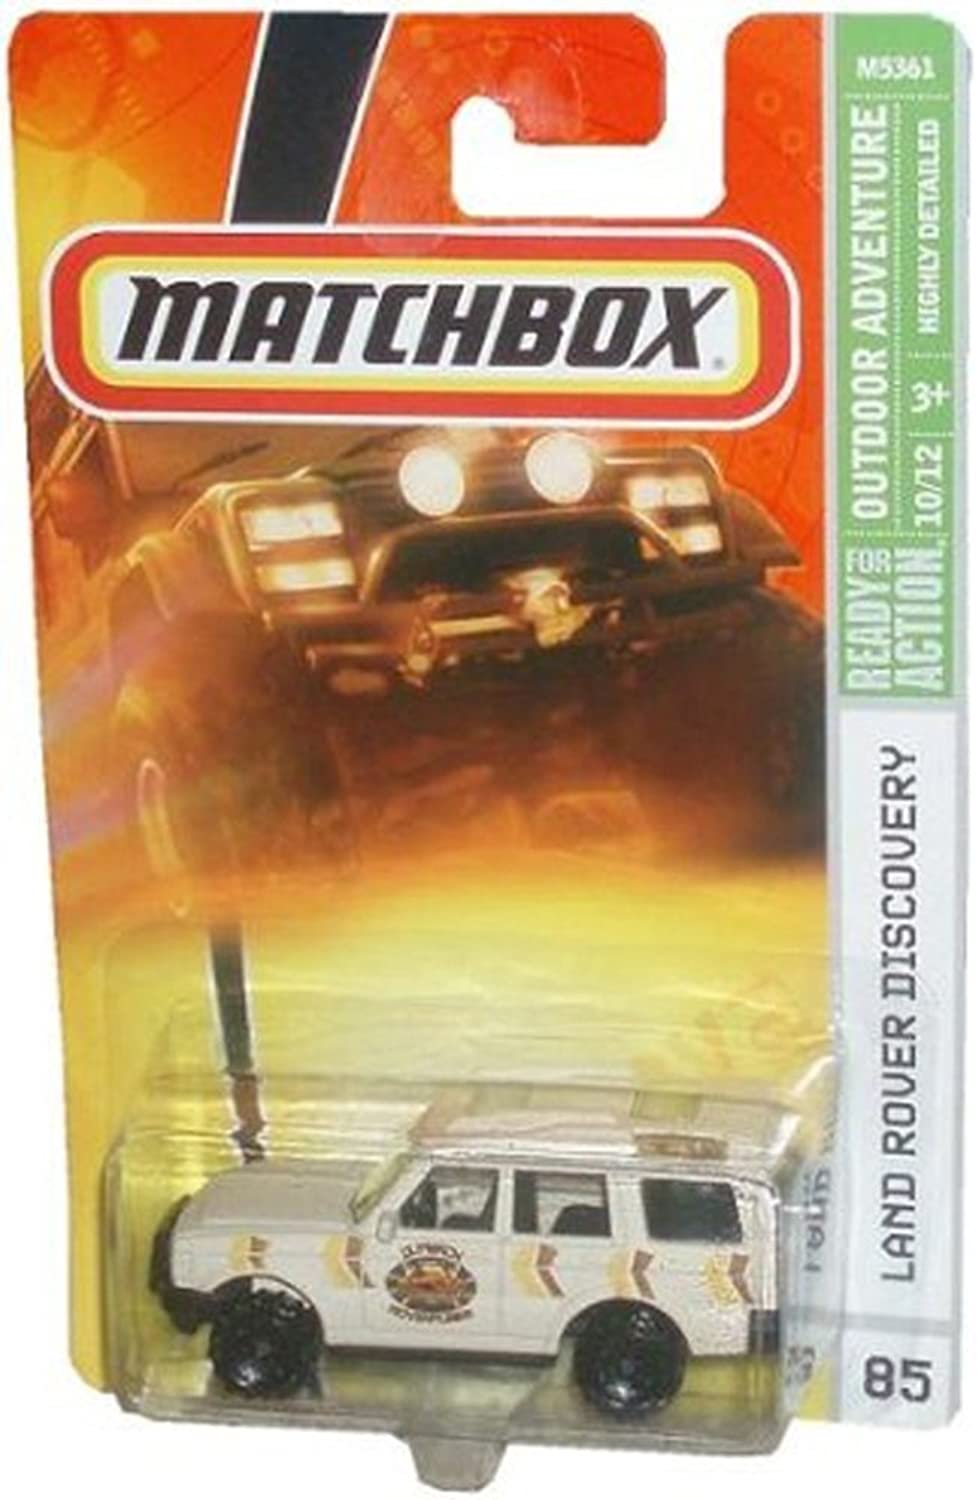 Mattel Matchbox 2007 MBX Outdoor Adventure 1 64 Scale Die Cast Metal Car   85  Tan color Outback Adventures Sport Utility Vehicle SUV Land Rover Discovery